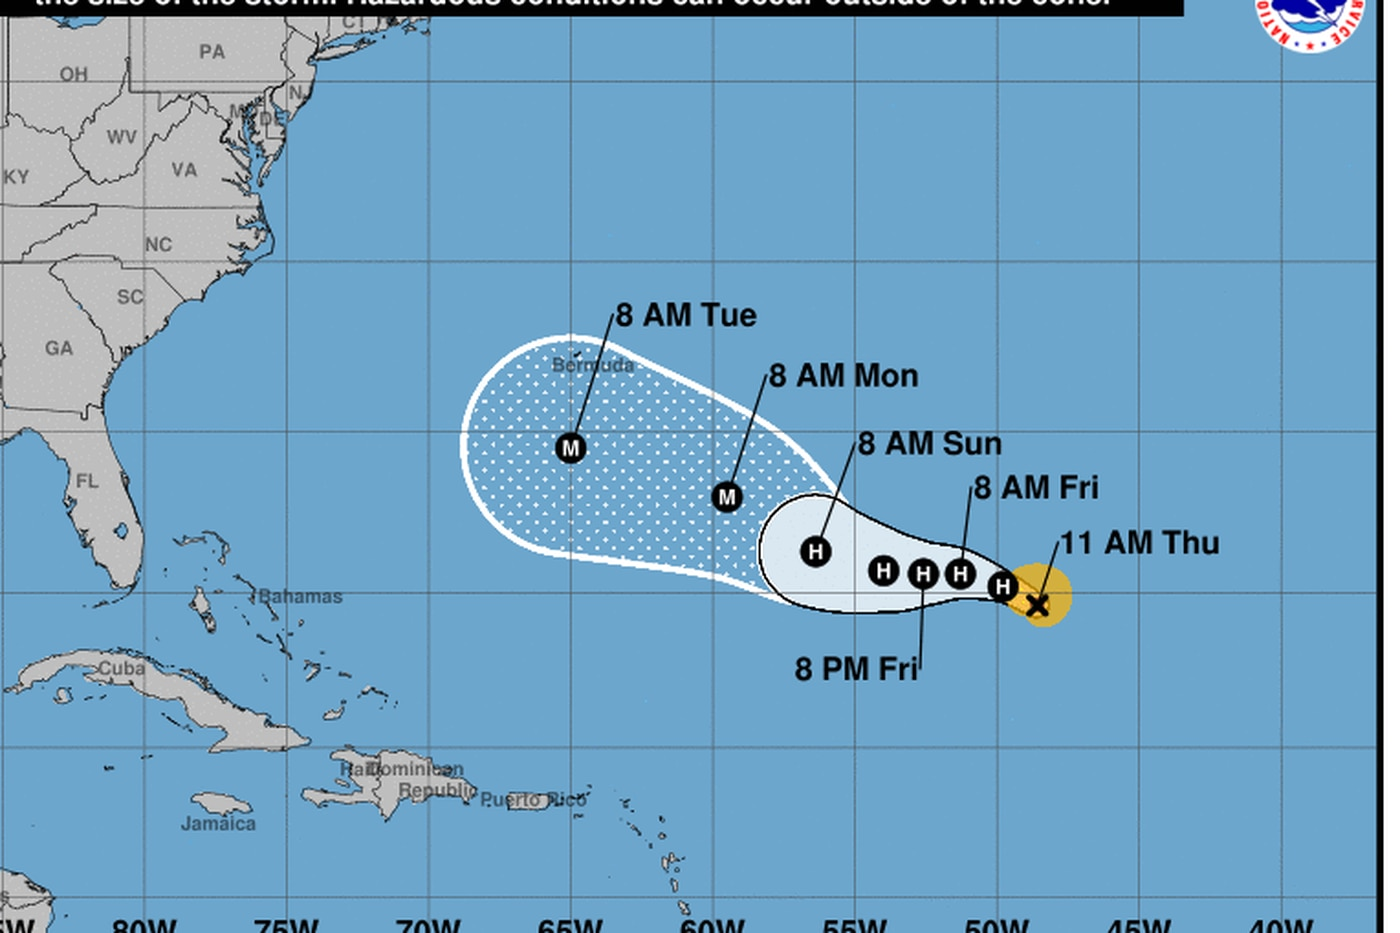 Meteorologists watching Hurricane Florence closely, with potential for East Coast landfall